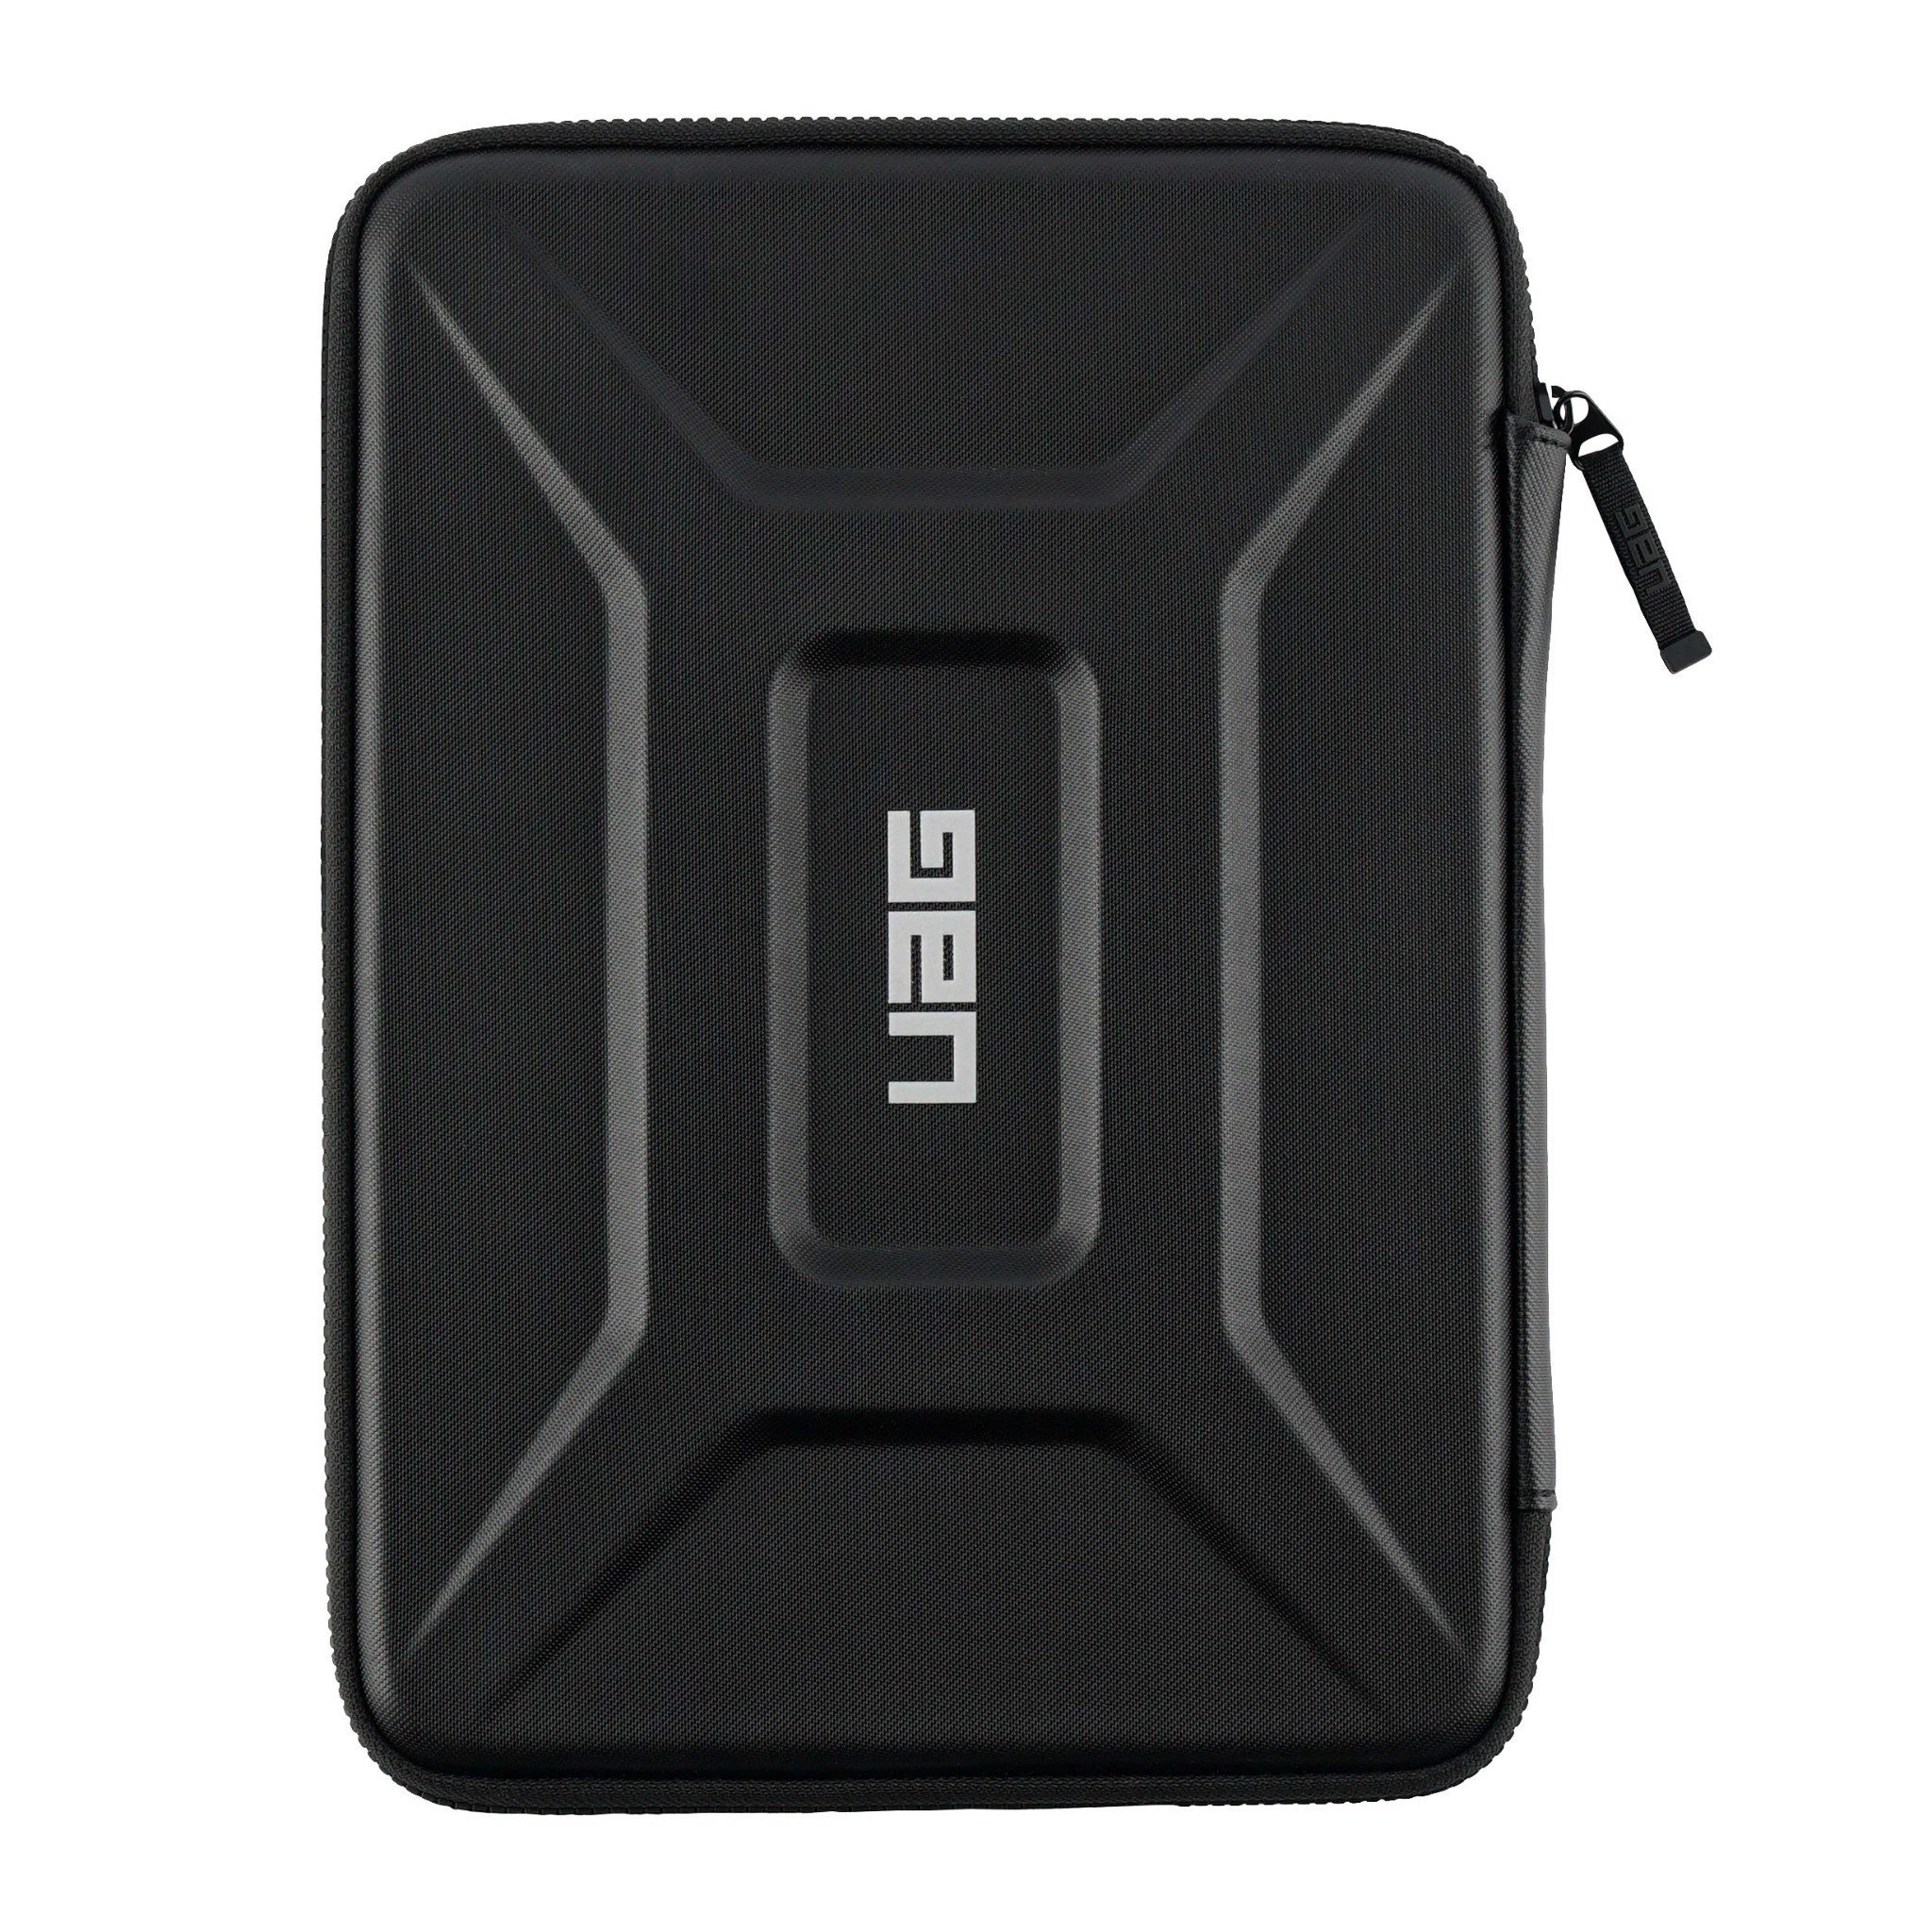 TÚI CHỐNG SỐC UAG MEDIUM SLEEVE WITH HANDLE Fits 13 inch Computers